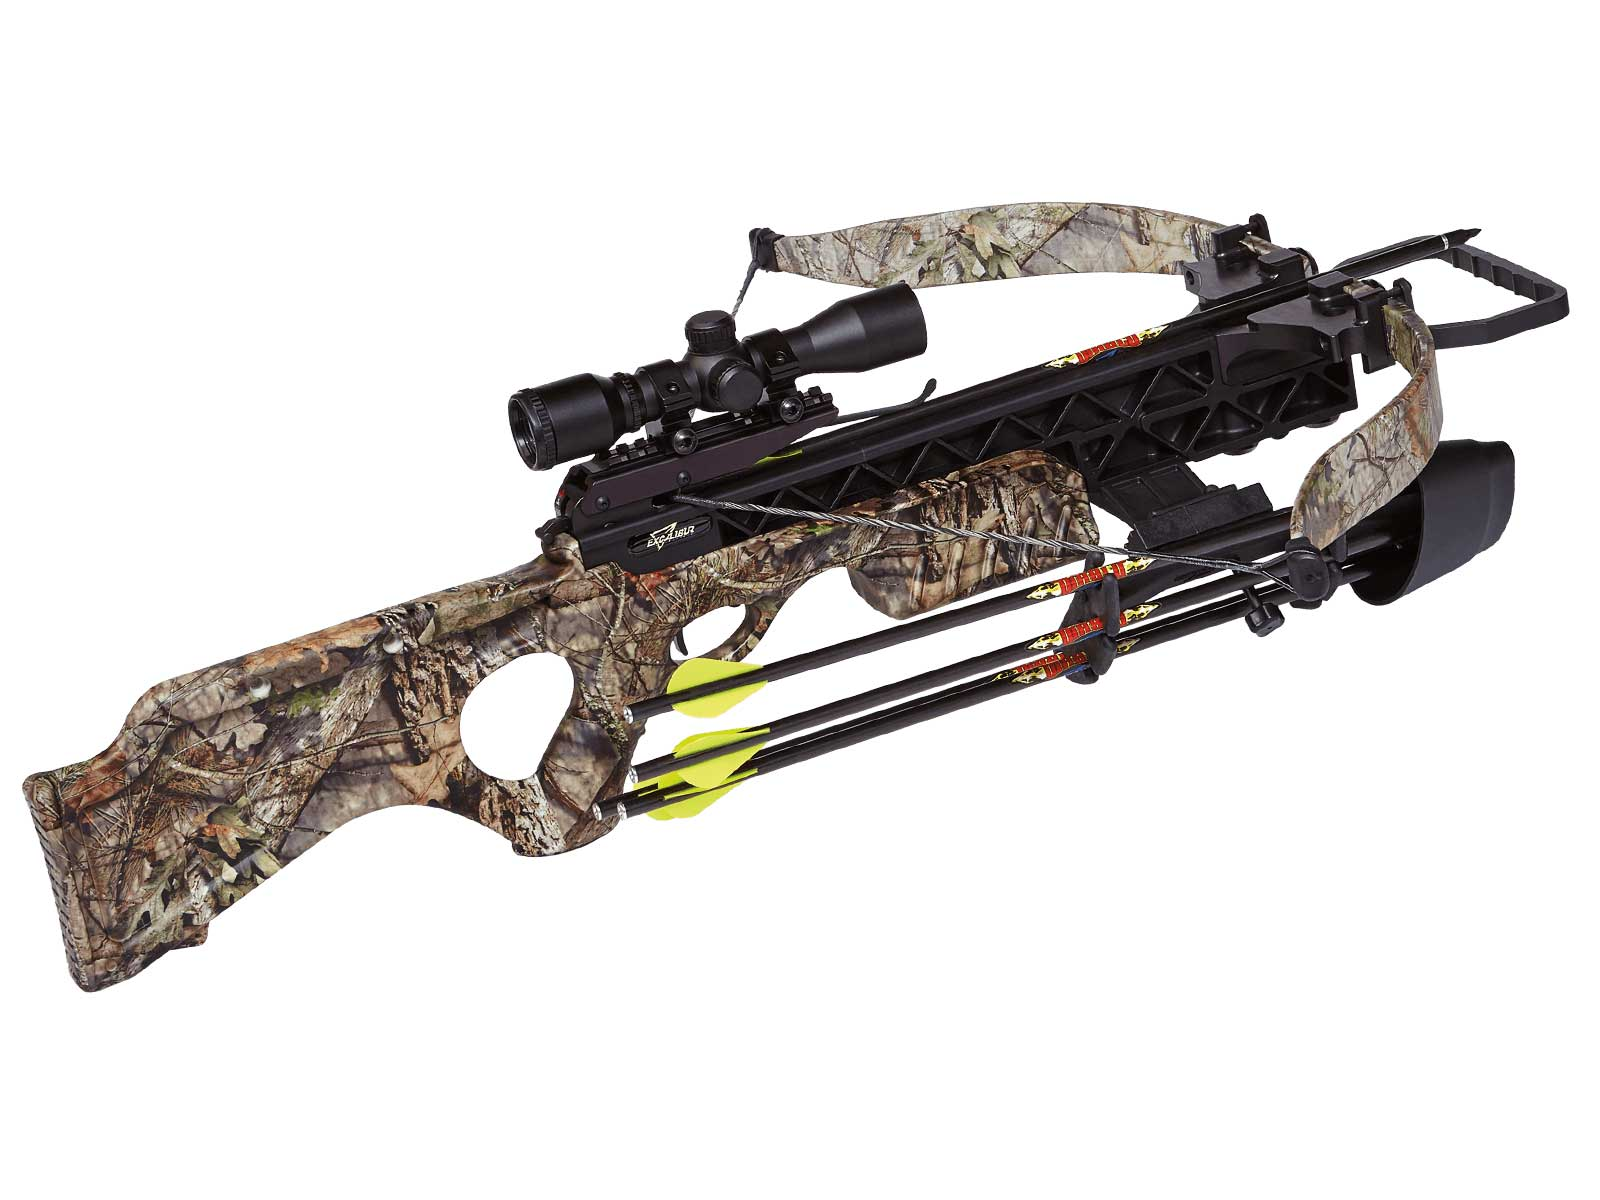 EXCALIBUR MATRIX GRIZZLY 330-LSP BOW